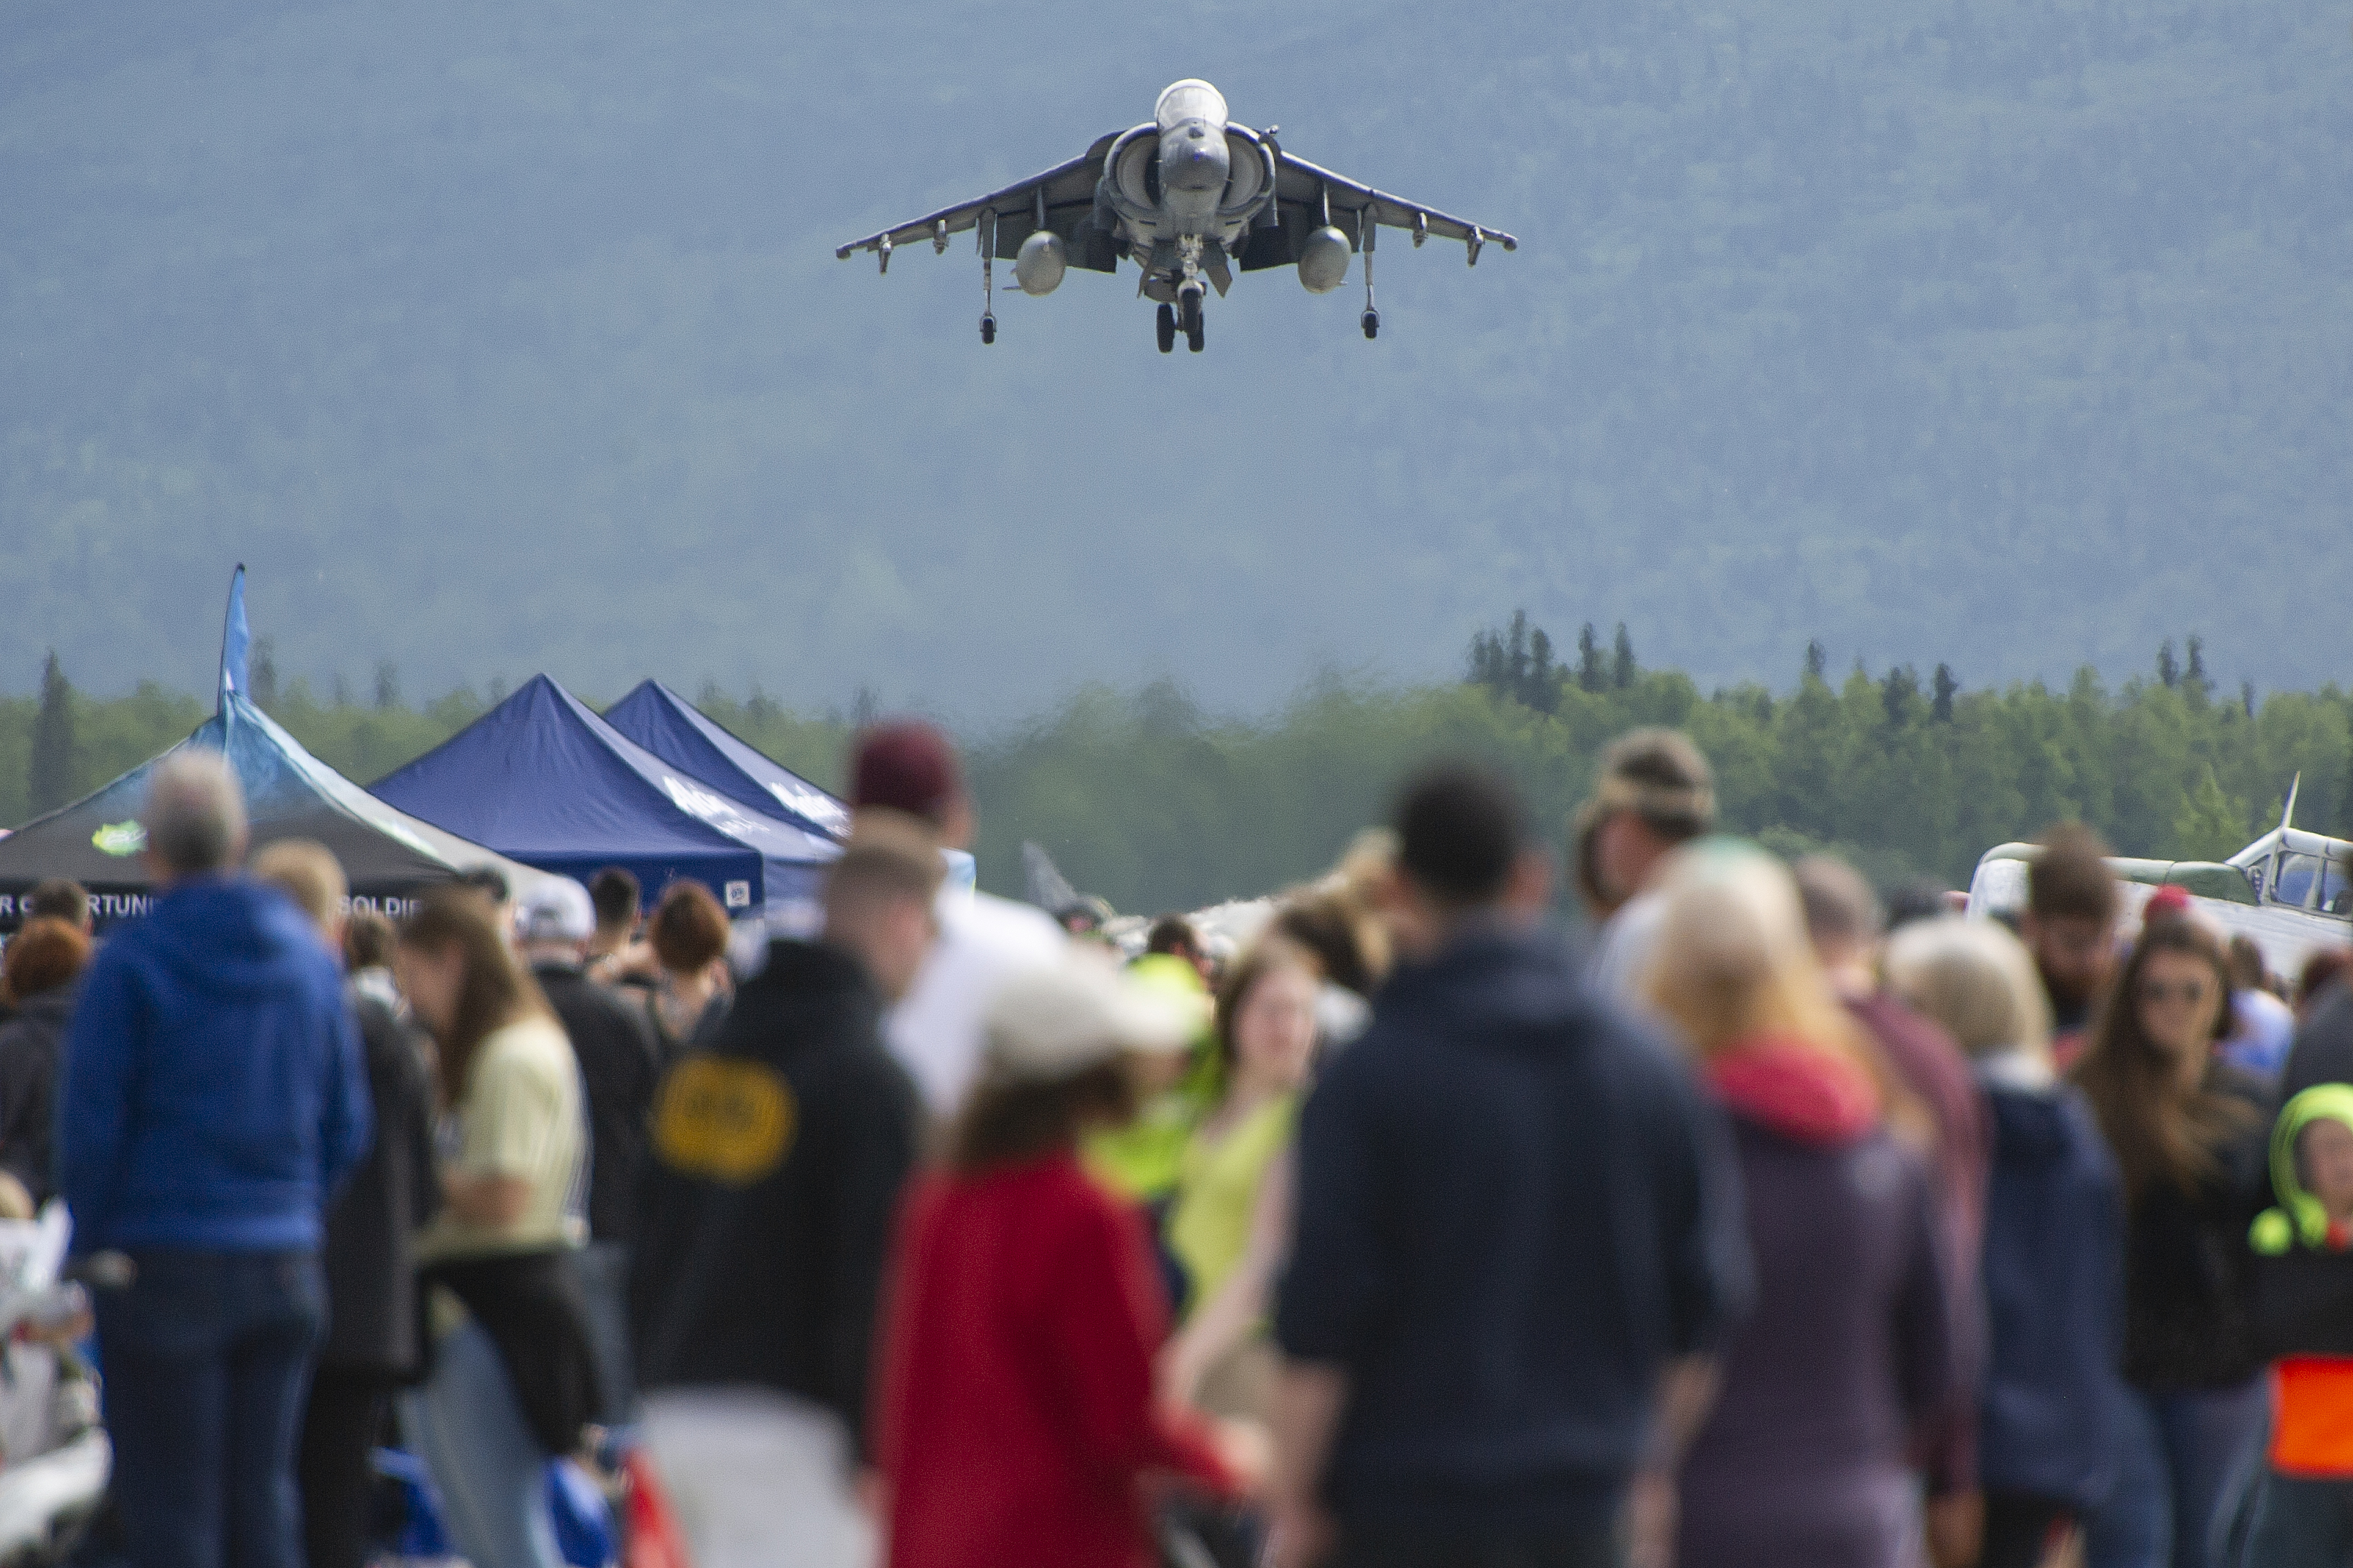 A U.S. Marine Corps. AV8B Harrier lands in front of the crowd during the Arctic Thunder Open House, June 30, 2018. This biennial event hosted by Joint Base Elmendorf-Richardson, Alaska, is one of the largest in the state and one of the premier aerial demonstrations in the world. The event features multiple performers and ground acts to include the JBER joint forces, U.S. Air Force F-22, and U.S. Air Force Thunderbirds demonstrations teams, June 30-July 1. (U.S. Air Force photo by Justin Connaher)